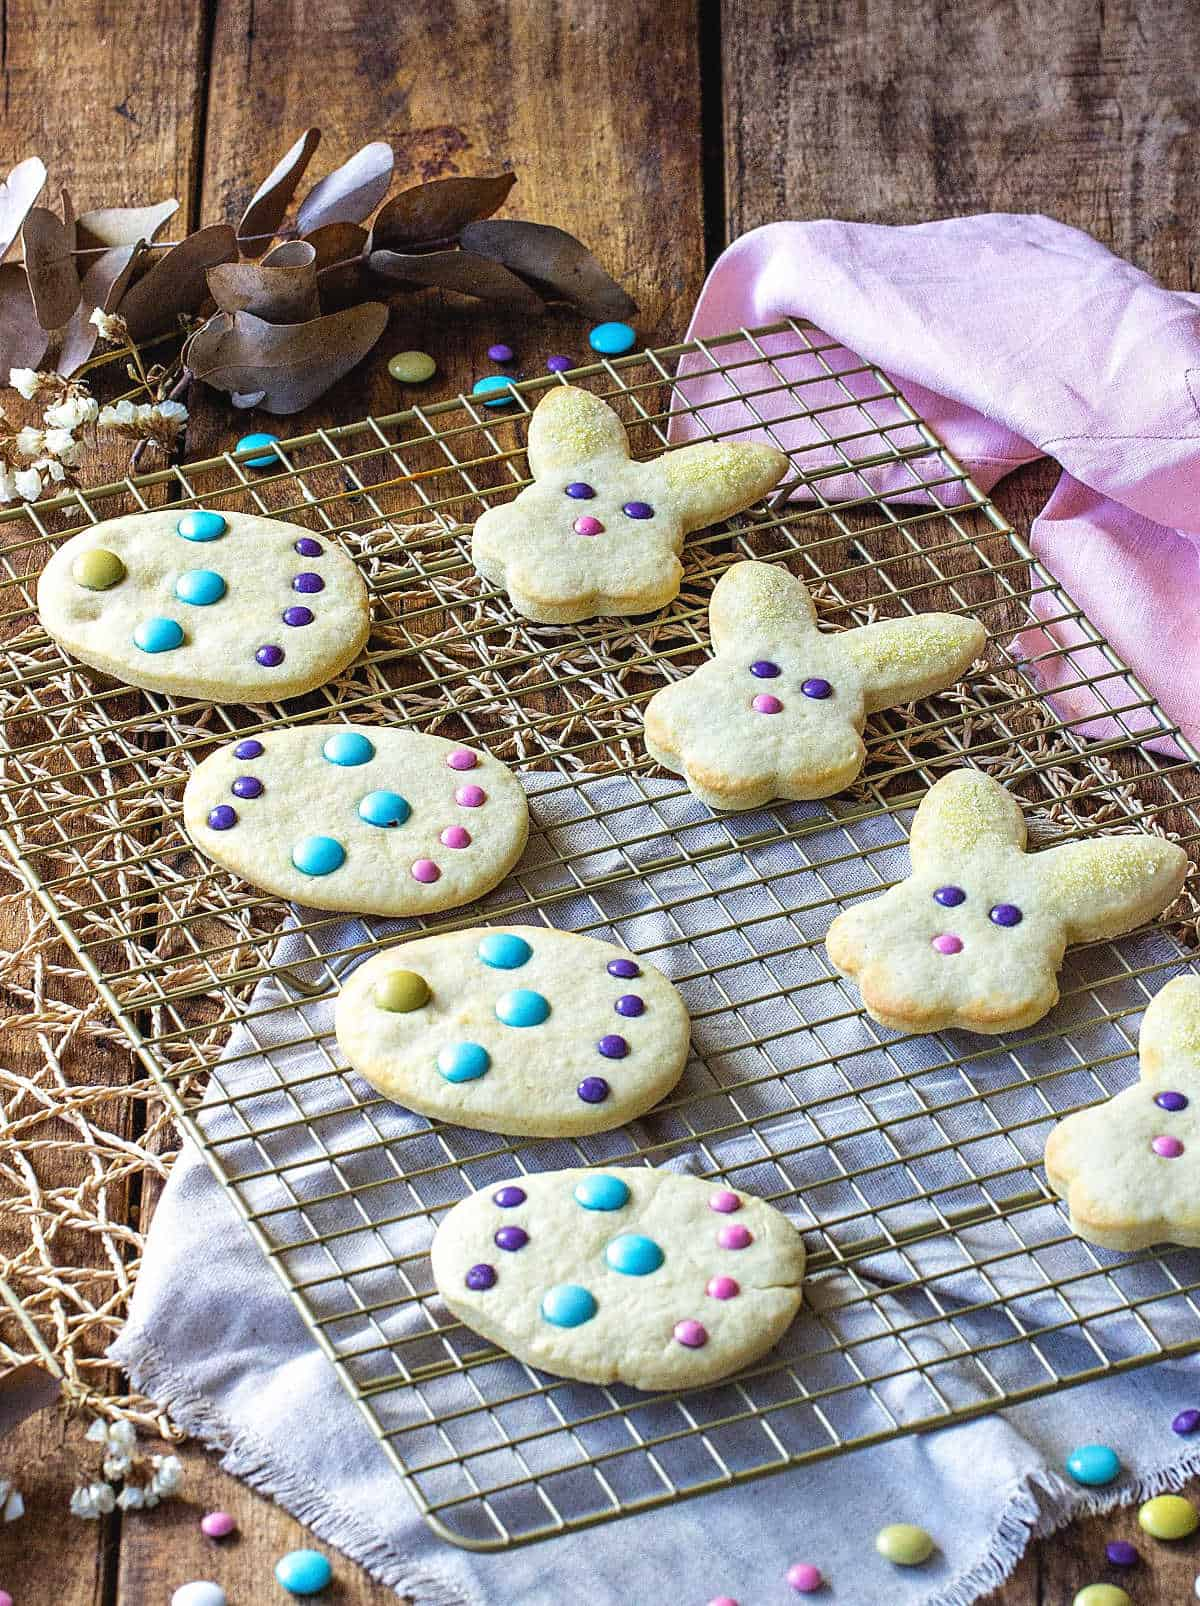 Several Easter sugar cookies on wire rack over wooden table with linens